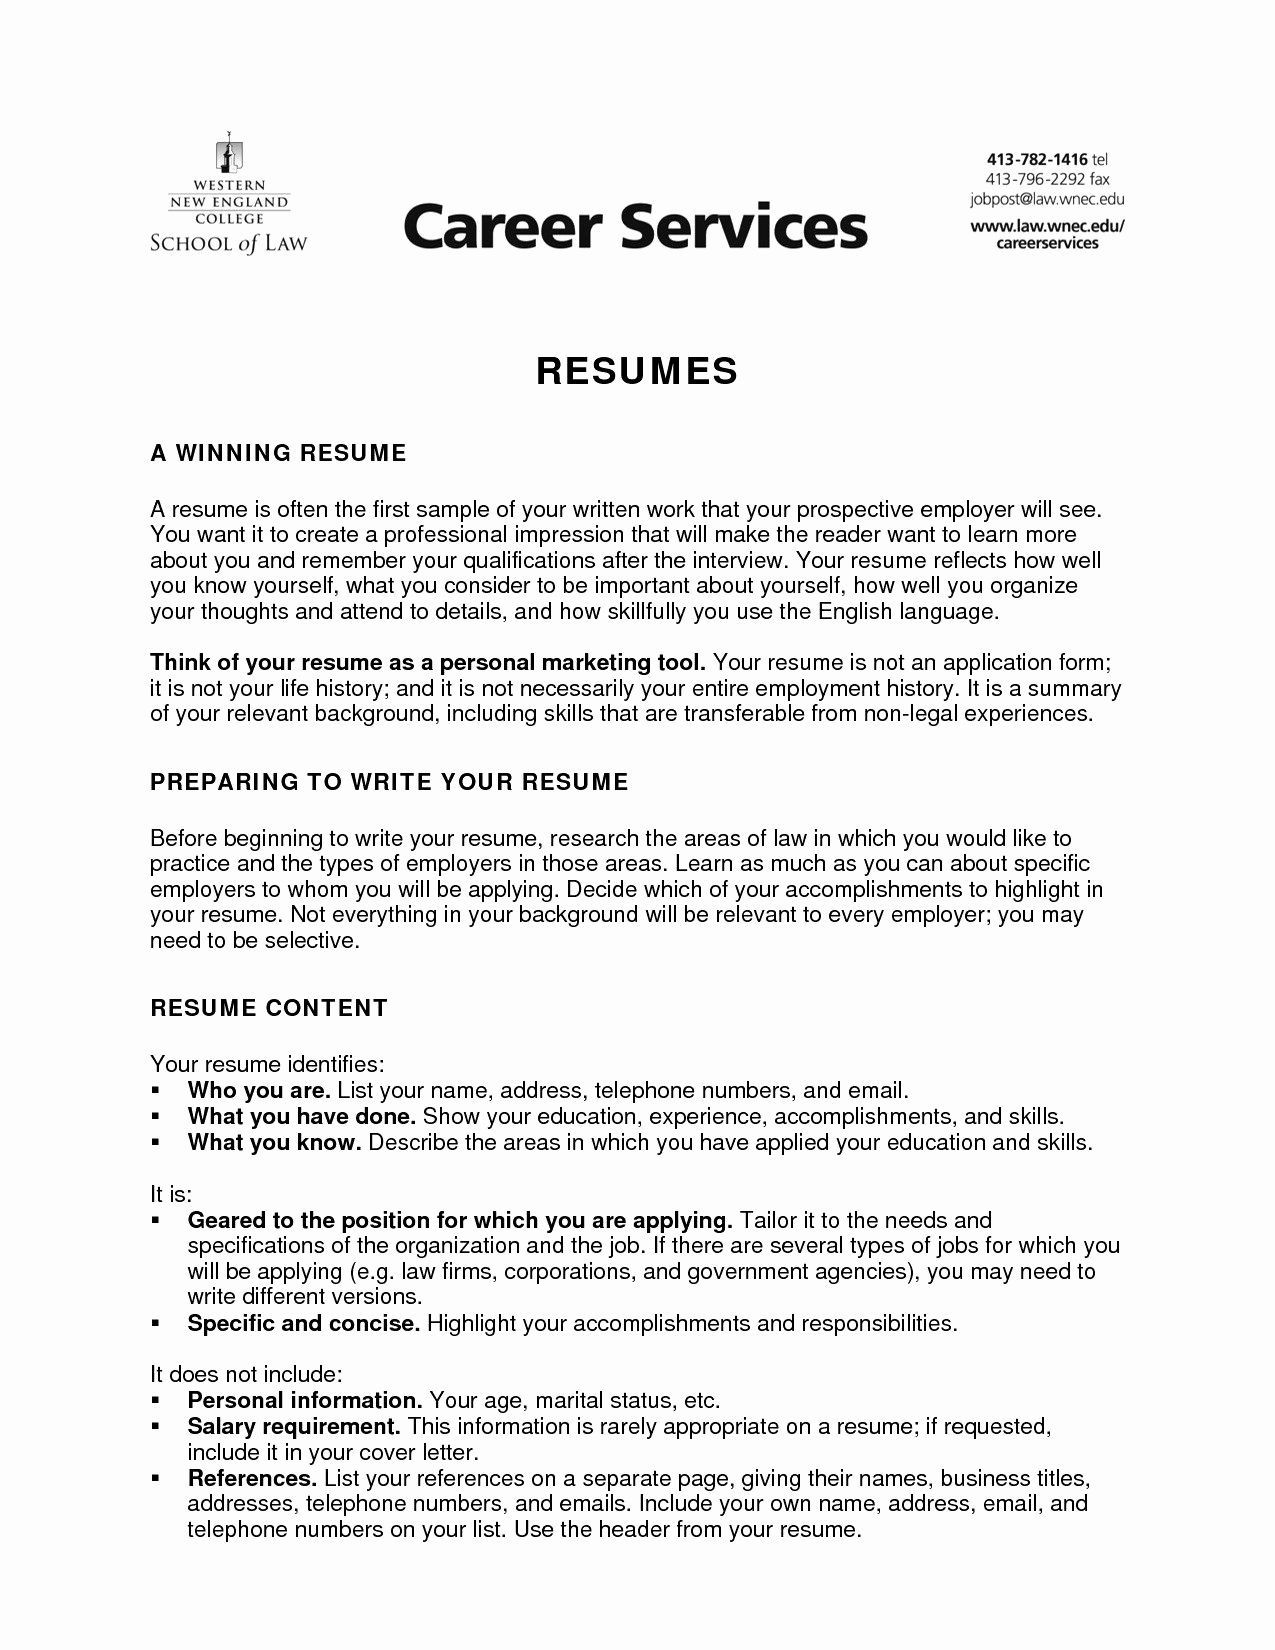 should i use a resume template example-Should I Use A Resume Template Lovely Luxury How To Write Proper Example New Costco 0d 13-h